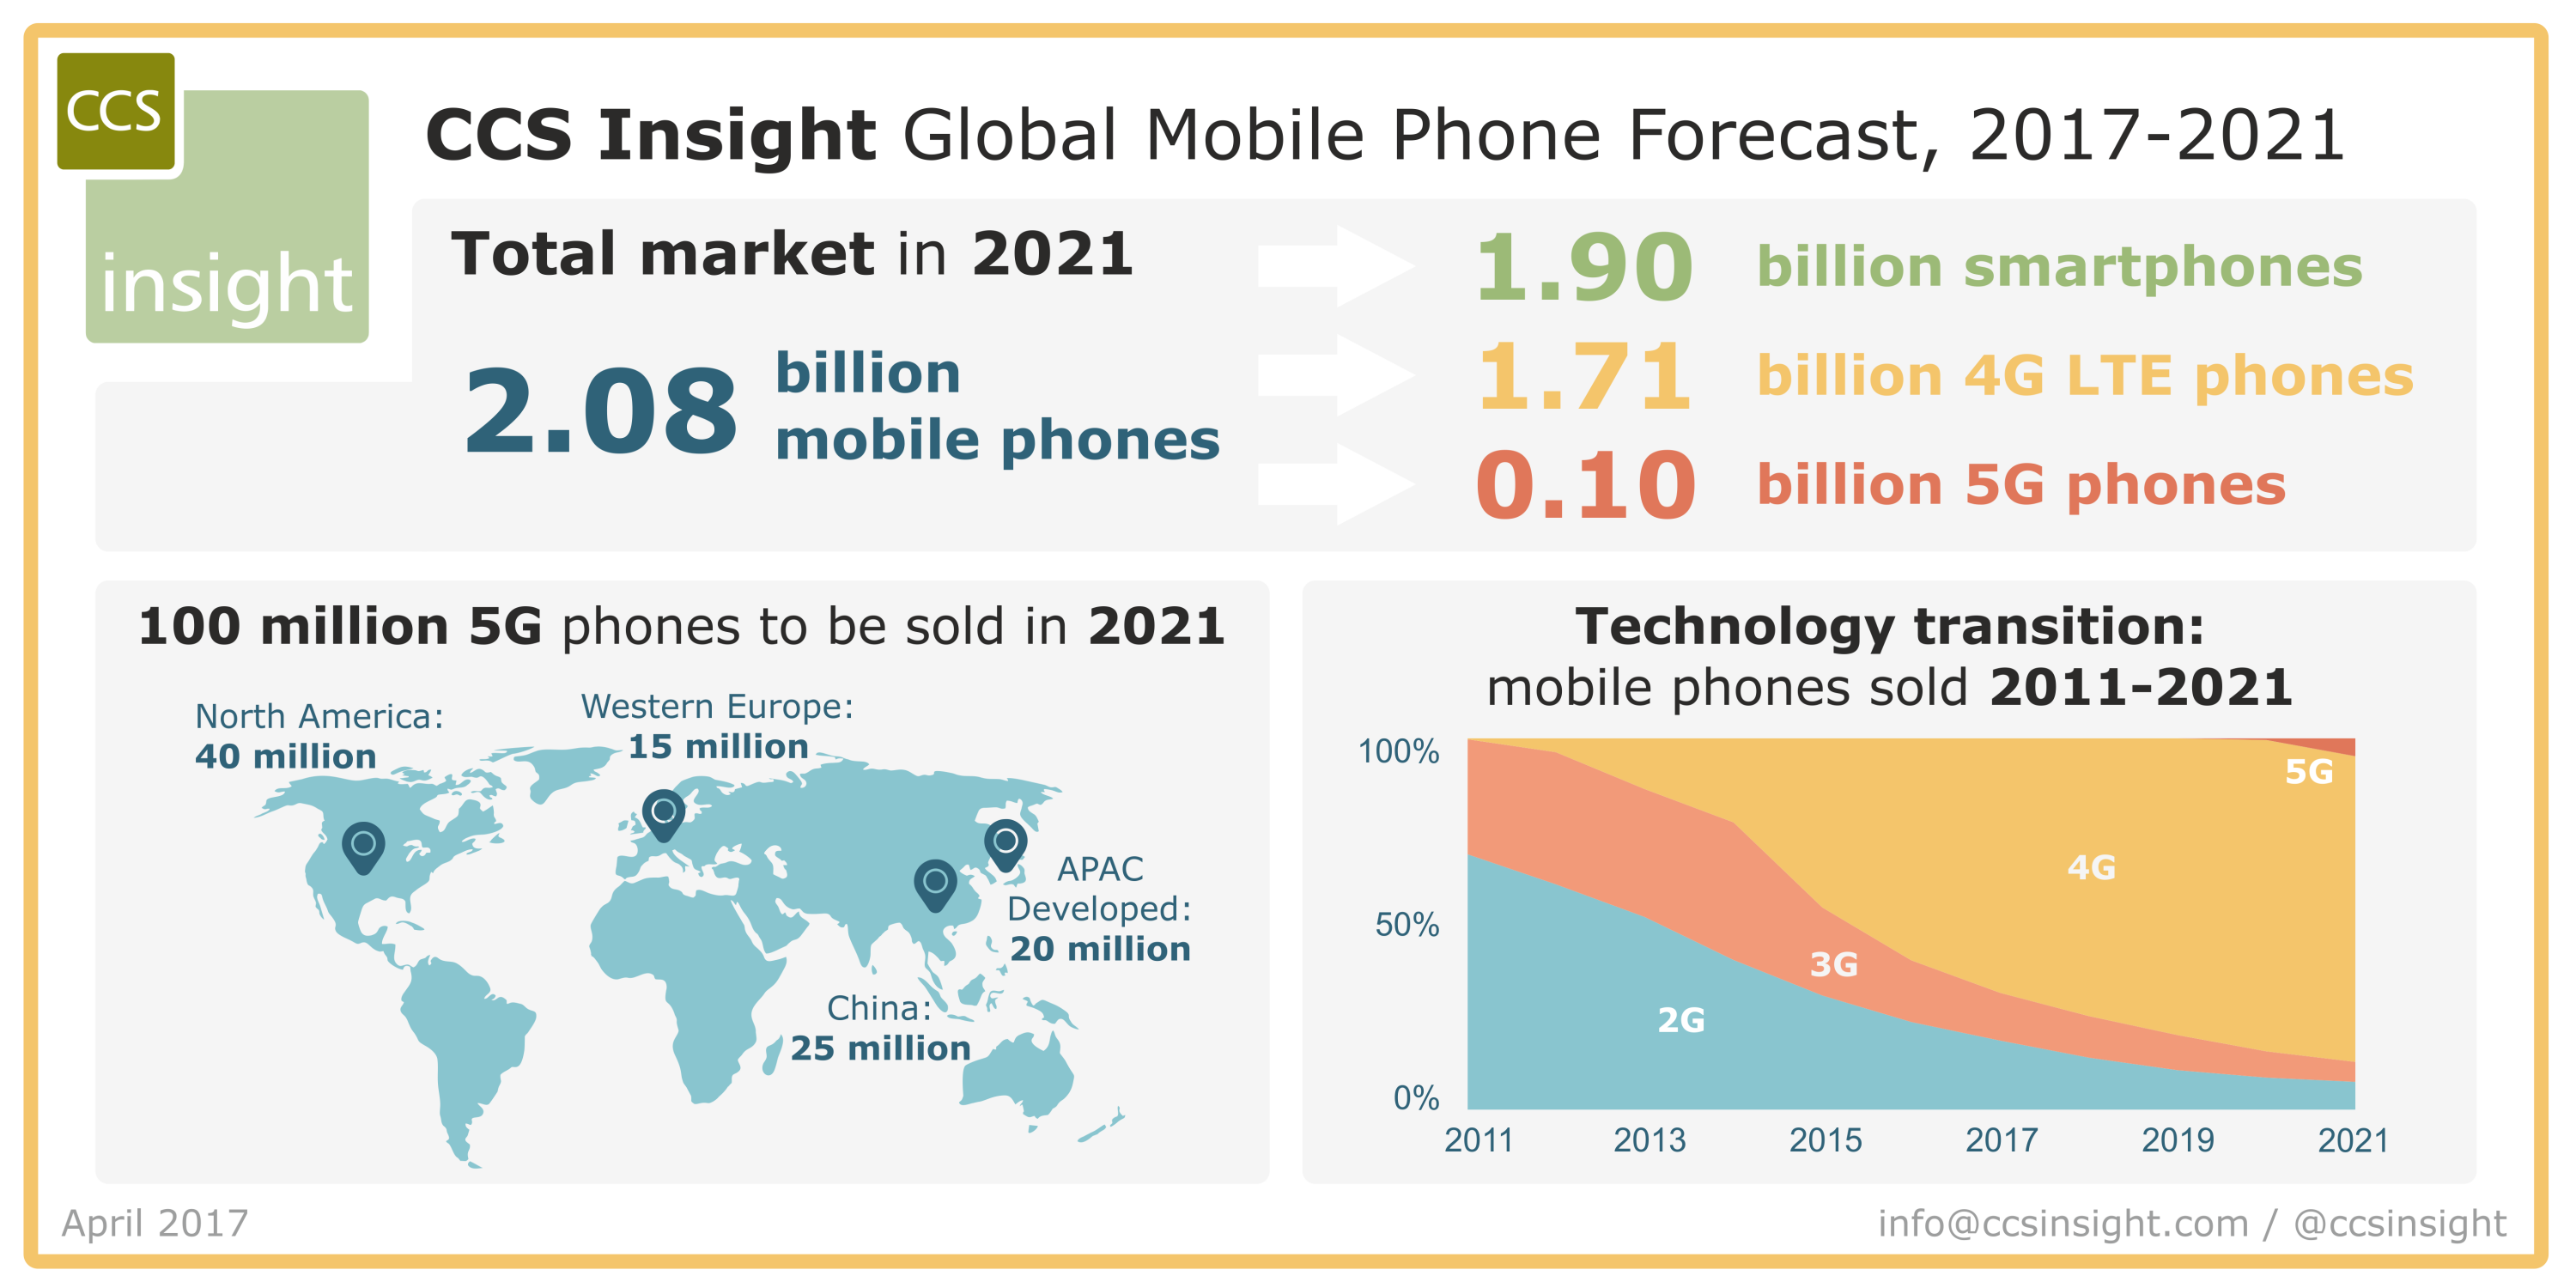 Source: CCS Insight Mobile Phone Forecast 2017-2021